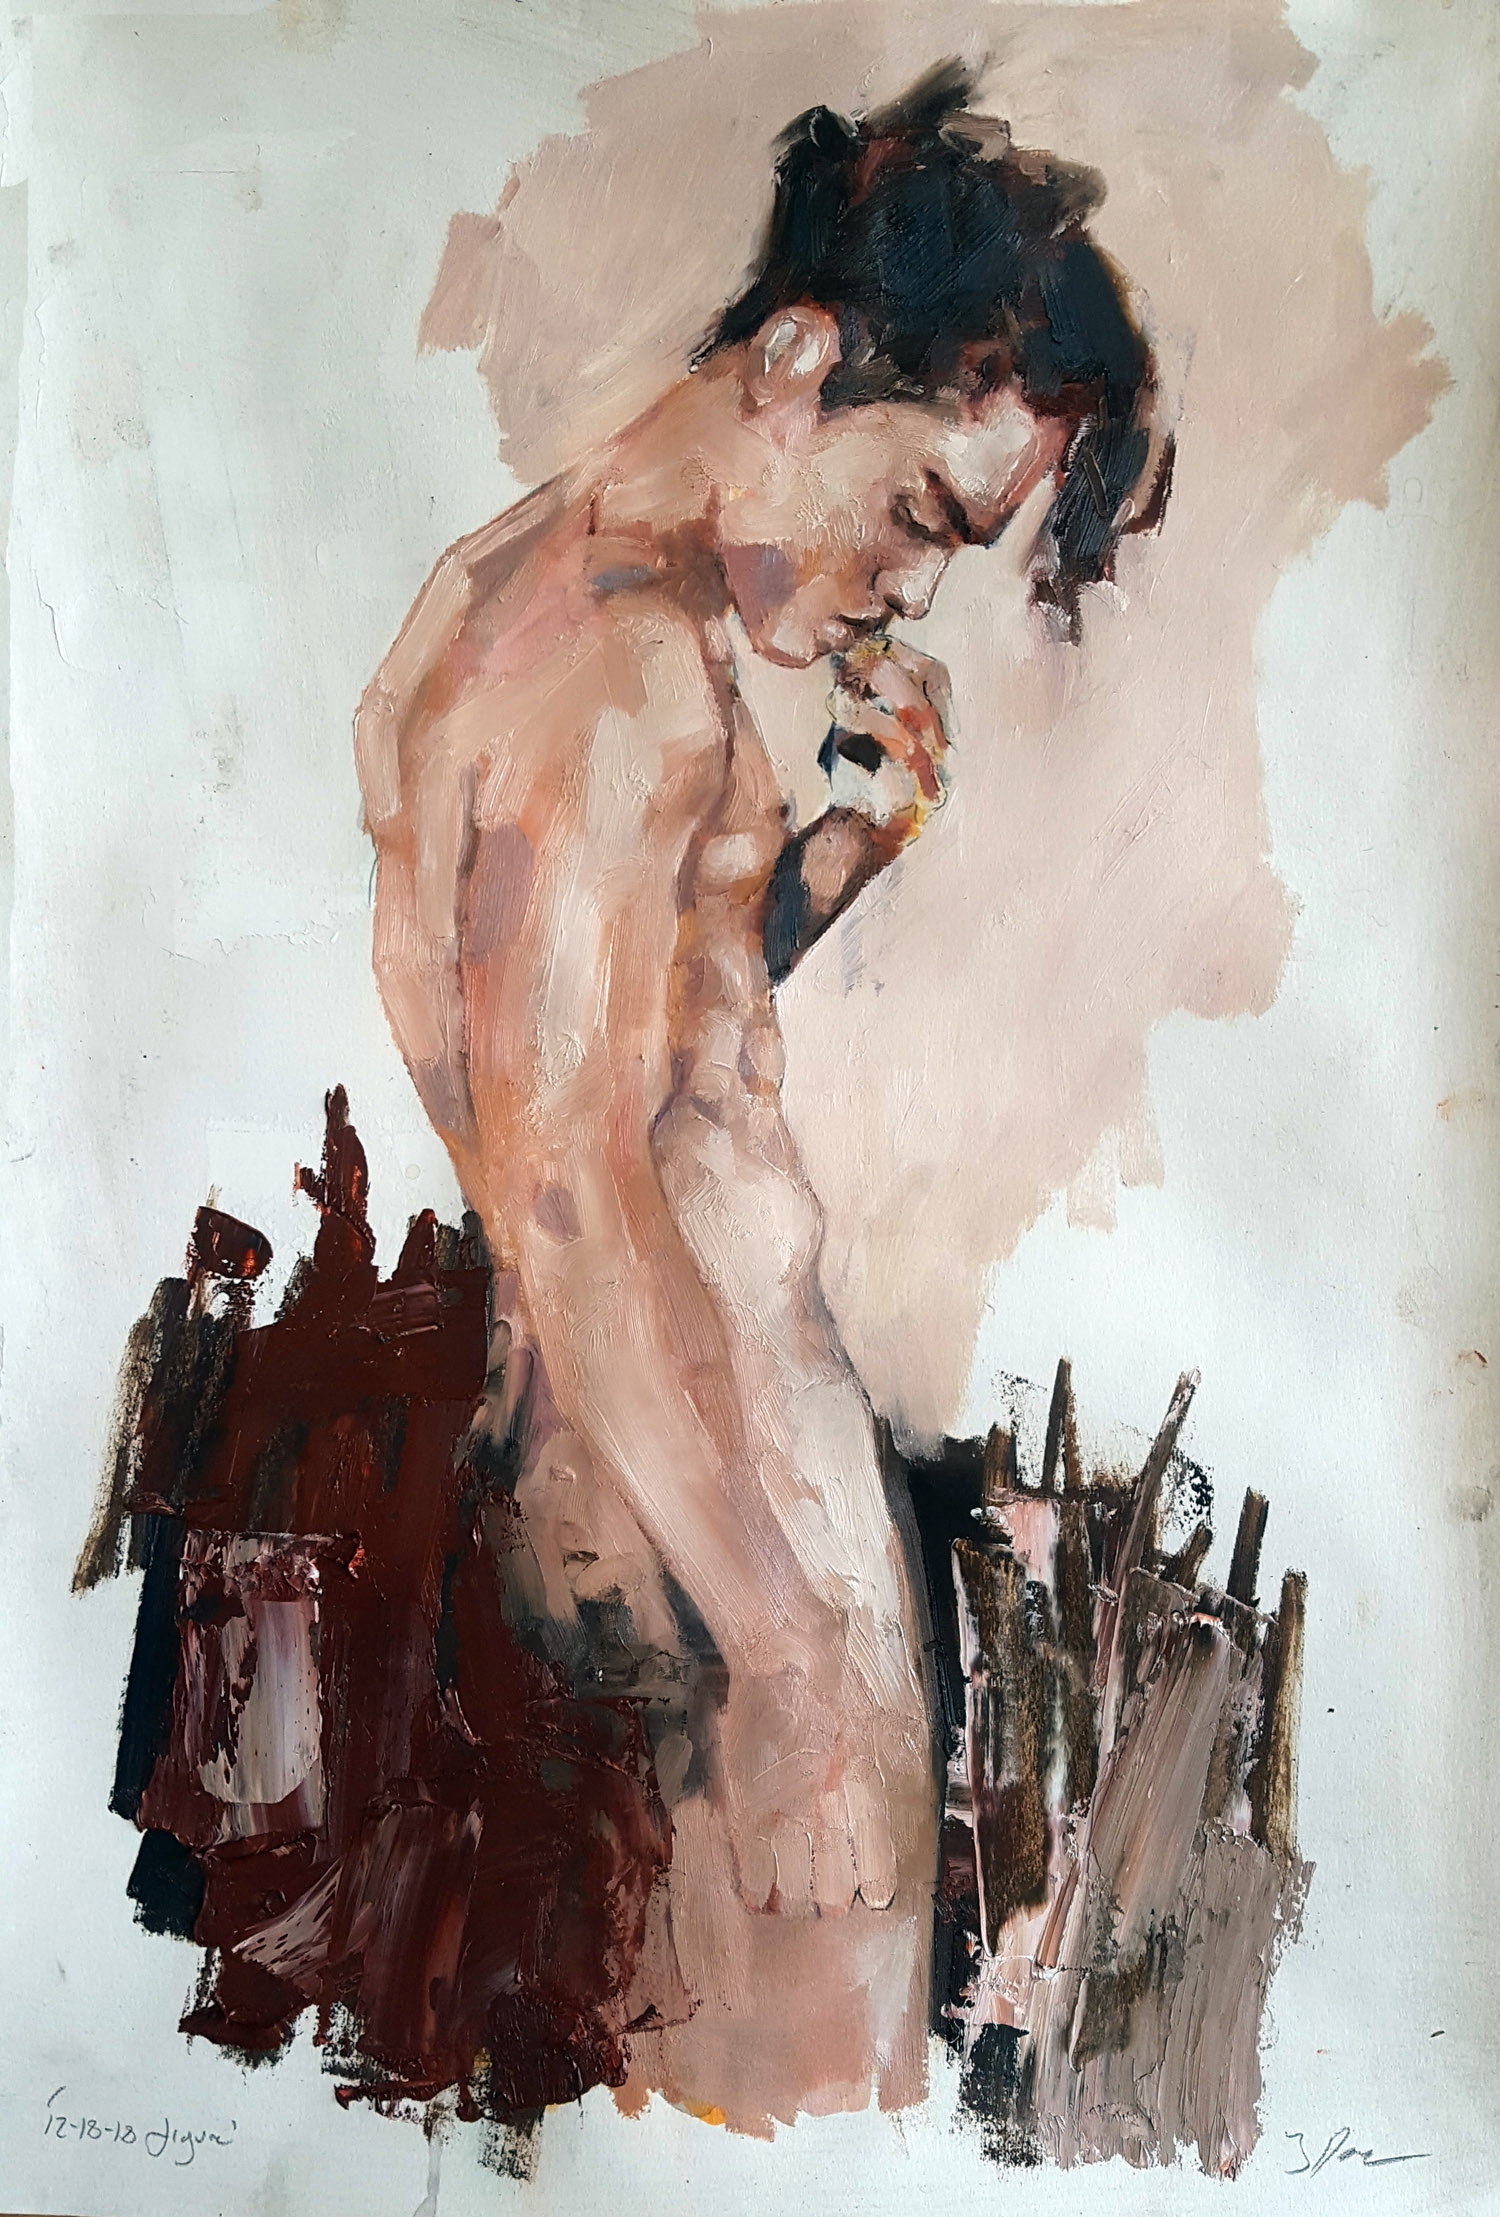 12-18-18 figure, oil on paper, 56x38cm